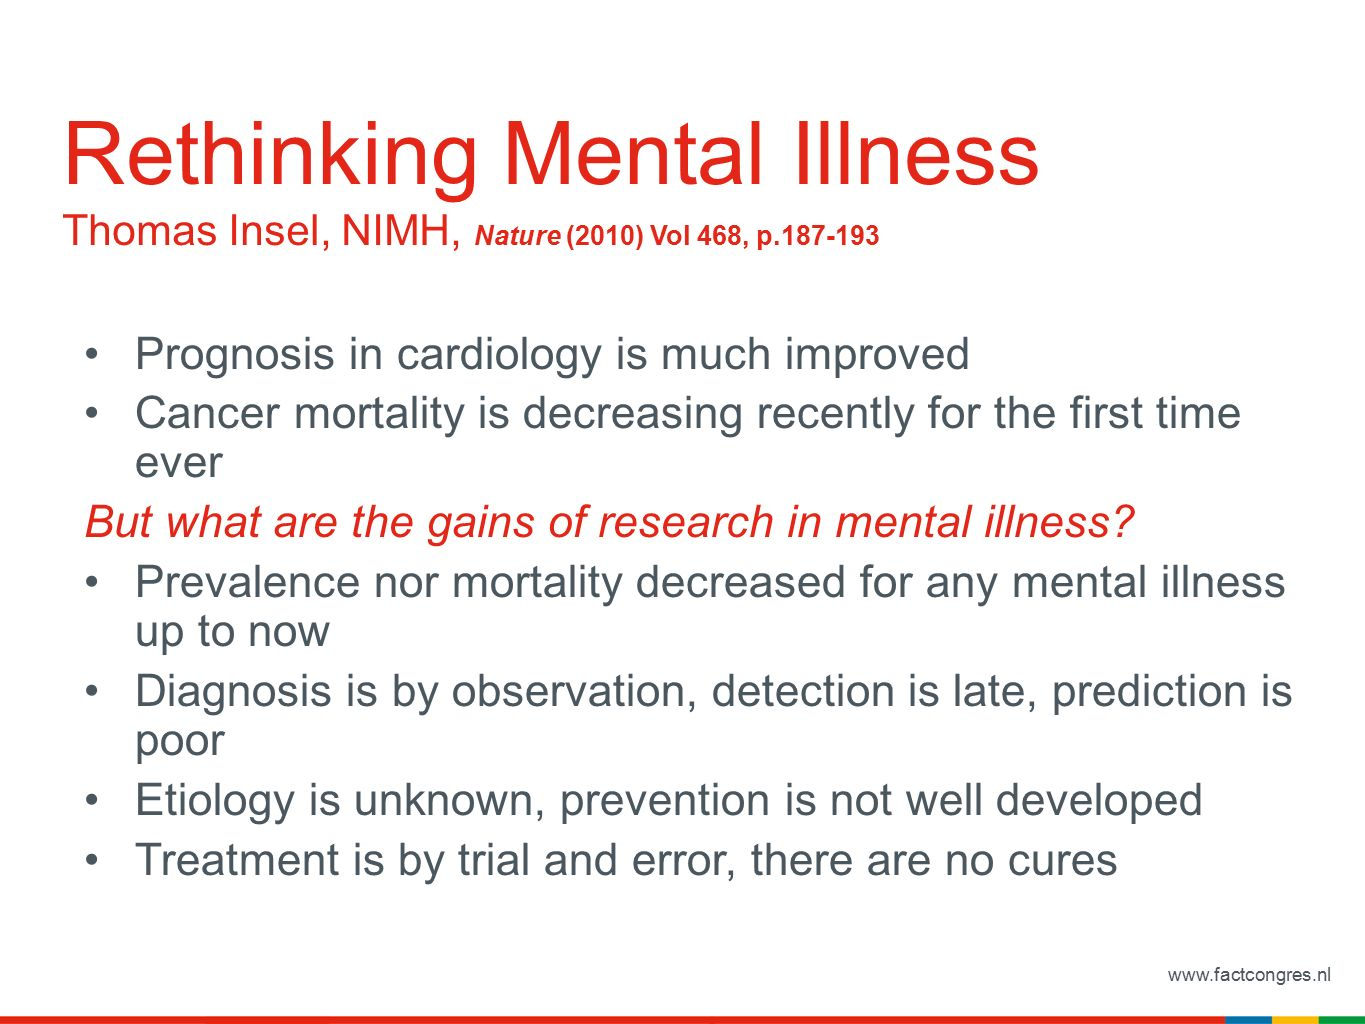 www.factcongres.nl Rethinking Mental Illness Thomas Insel, NIMH, Nature (2010) Vol 468, p.187-193 Prognosis in cardiology is much improved Cancer mortality is decreasing recently for the first time ever But what are the gains of research in mental illness.